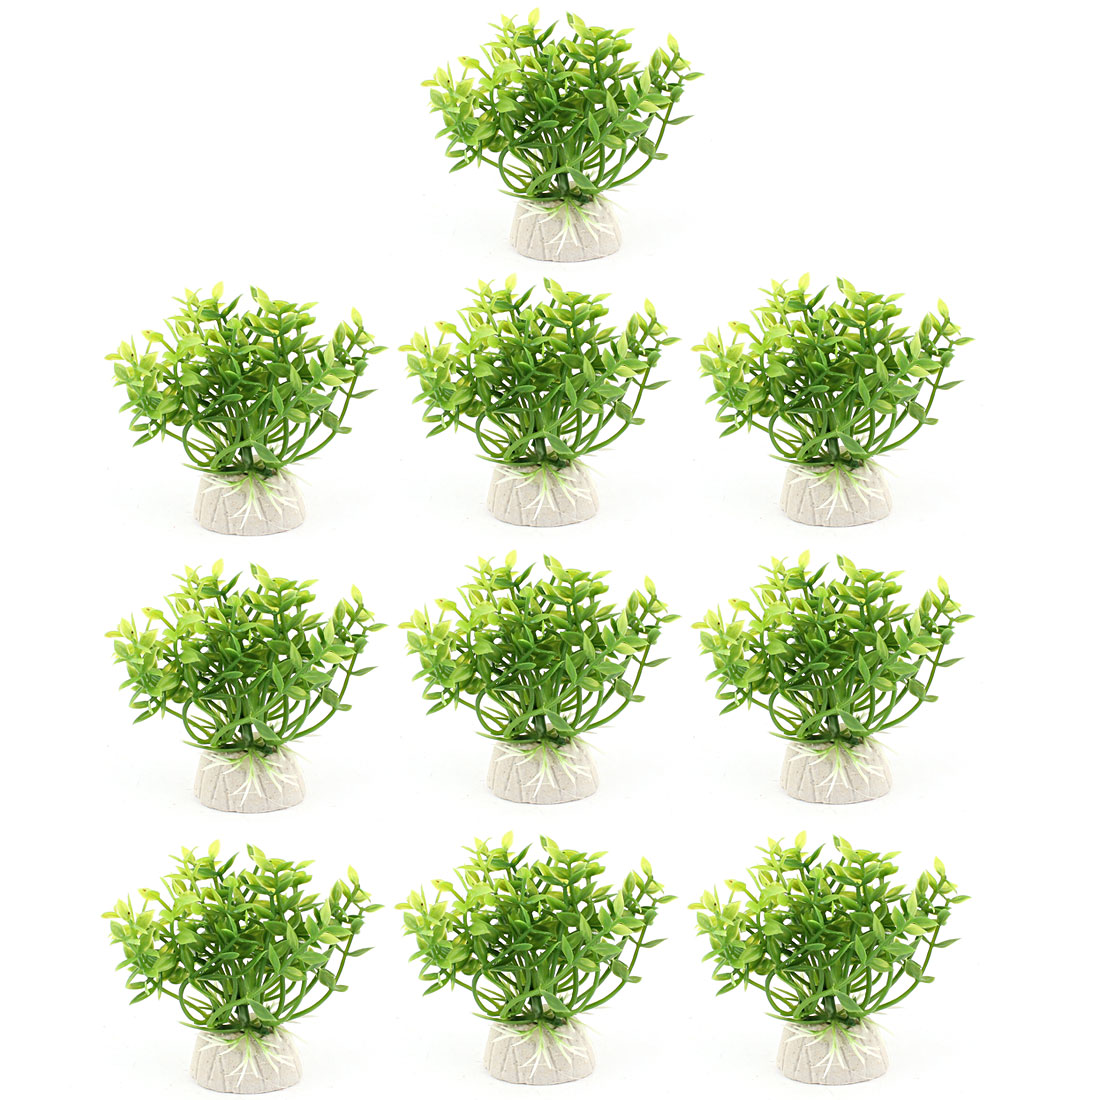 Plastic Leaf Aquatic Plant Fish Tank Aquarium Decor Green 10PCS